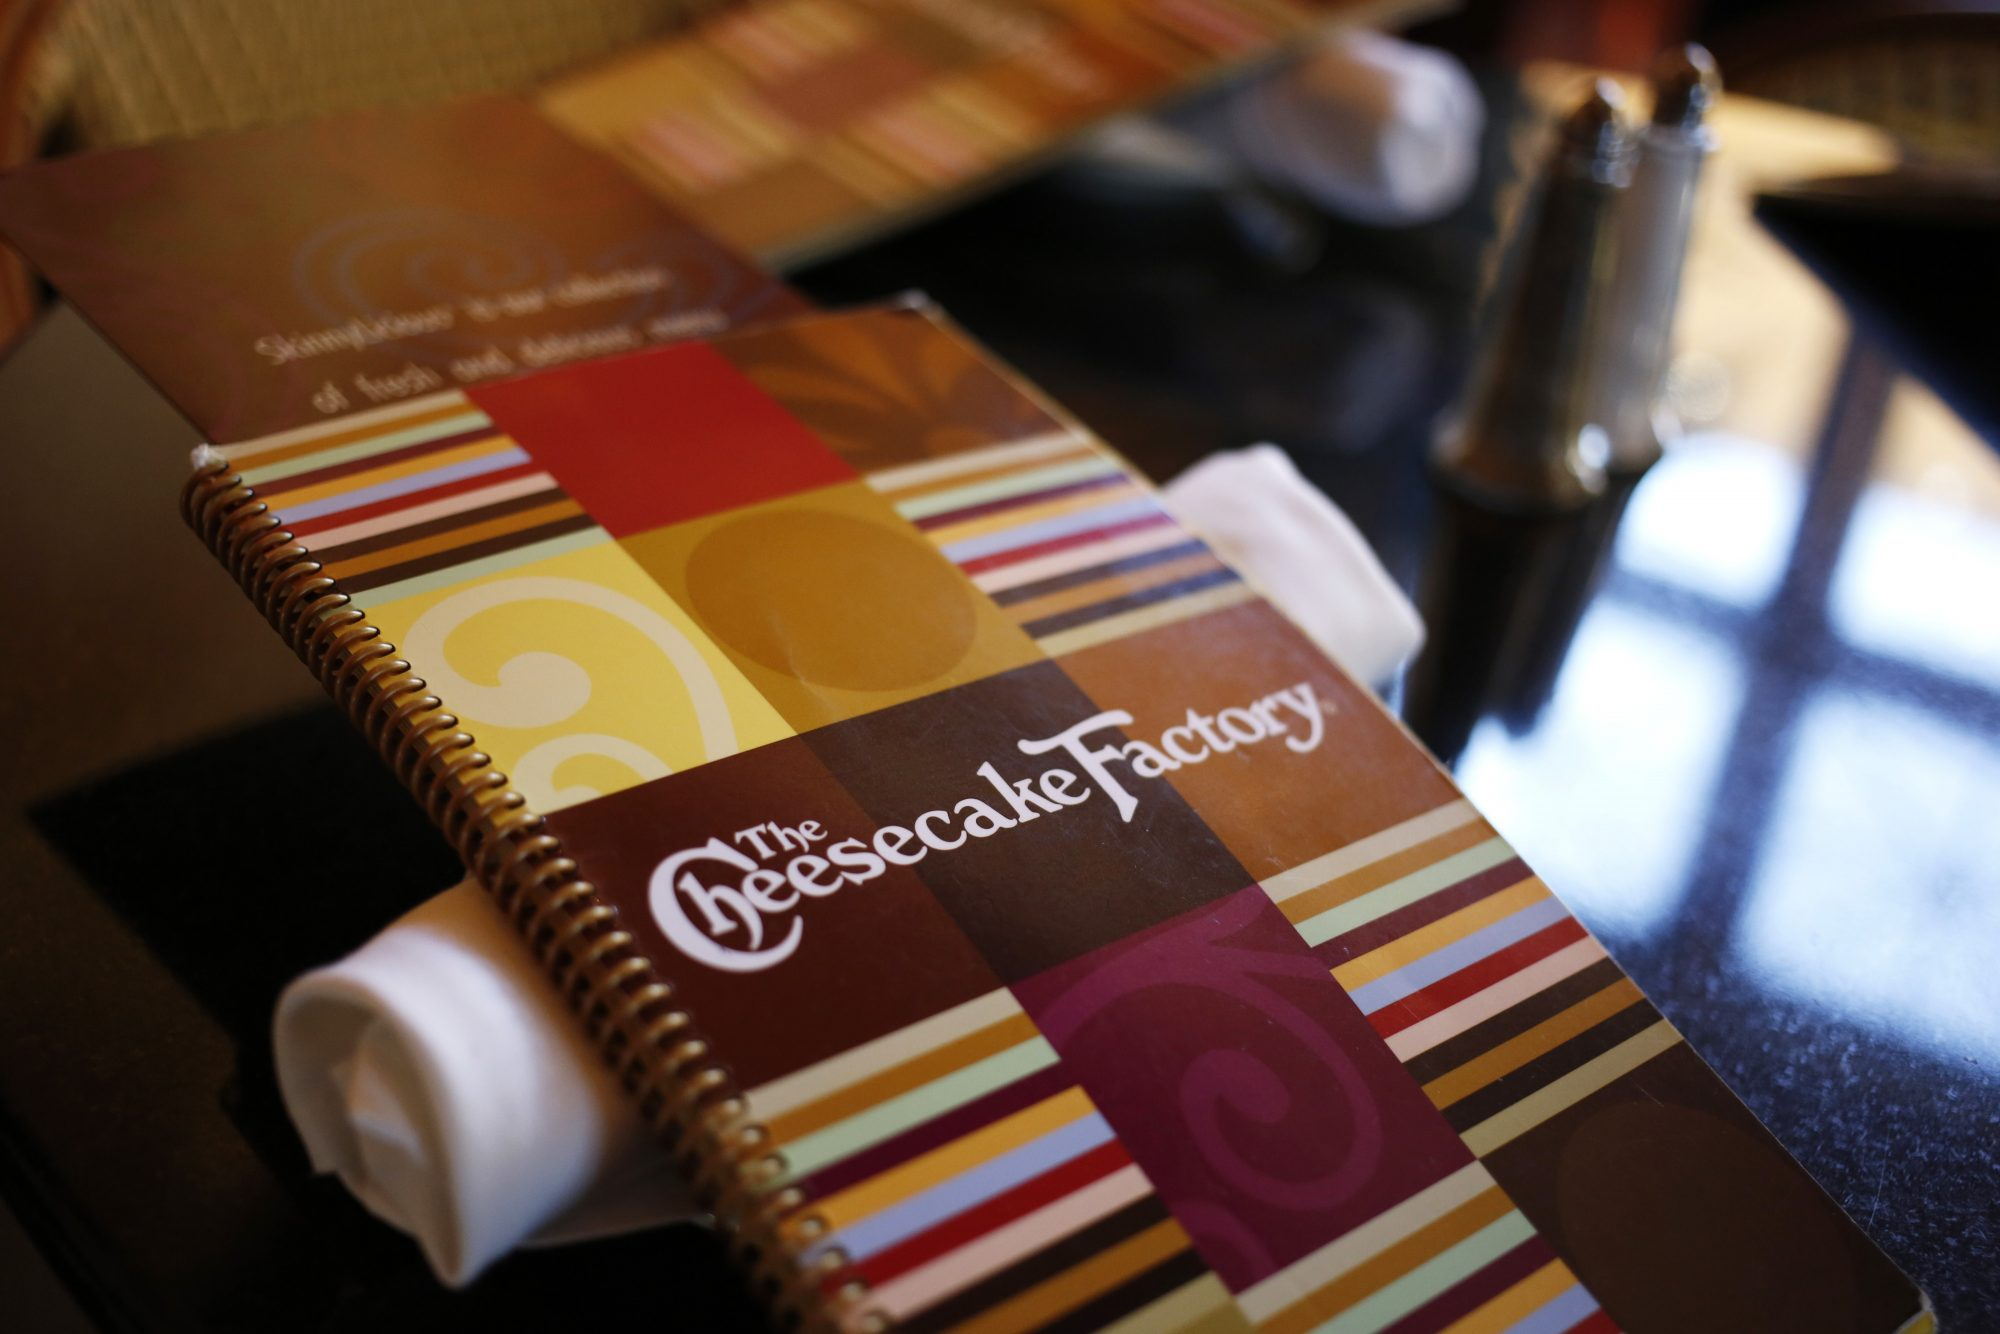 Patrons Dine At The Cheesecake Factory Restaurant In Kentucky